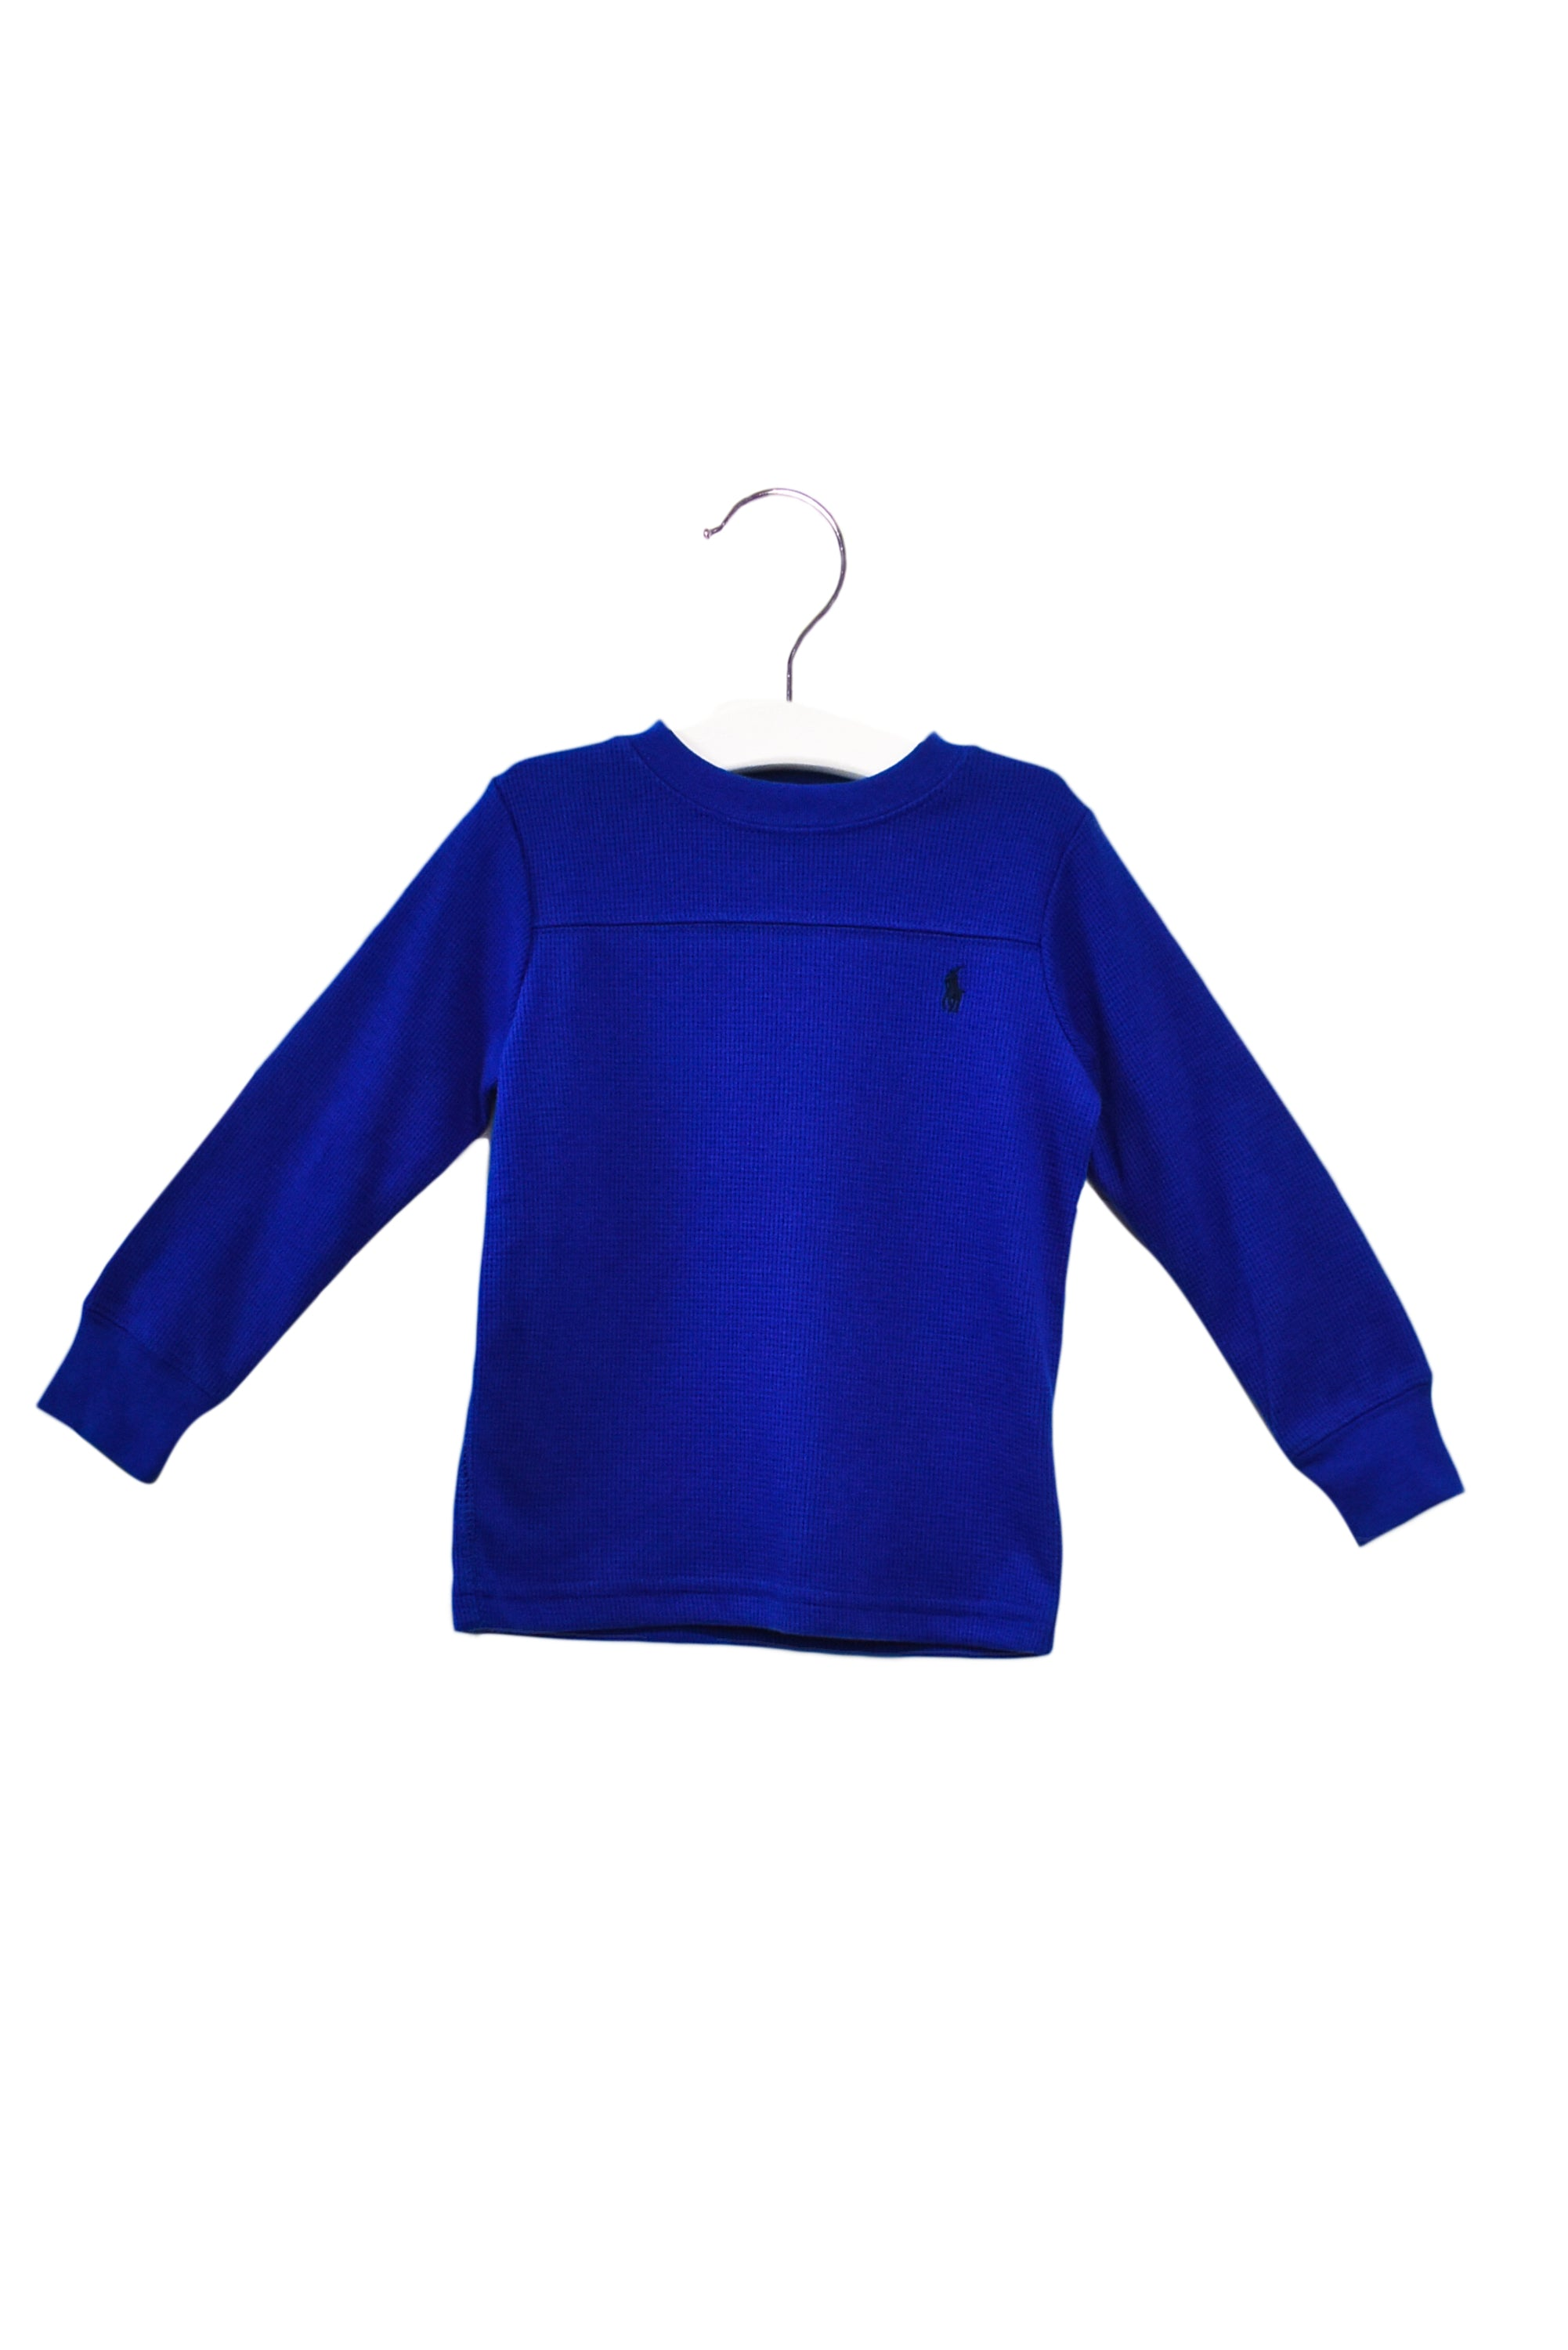 10028361 Polo Ralph Lauren Kids~Top 2T at Retykle